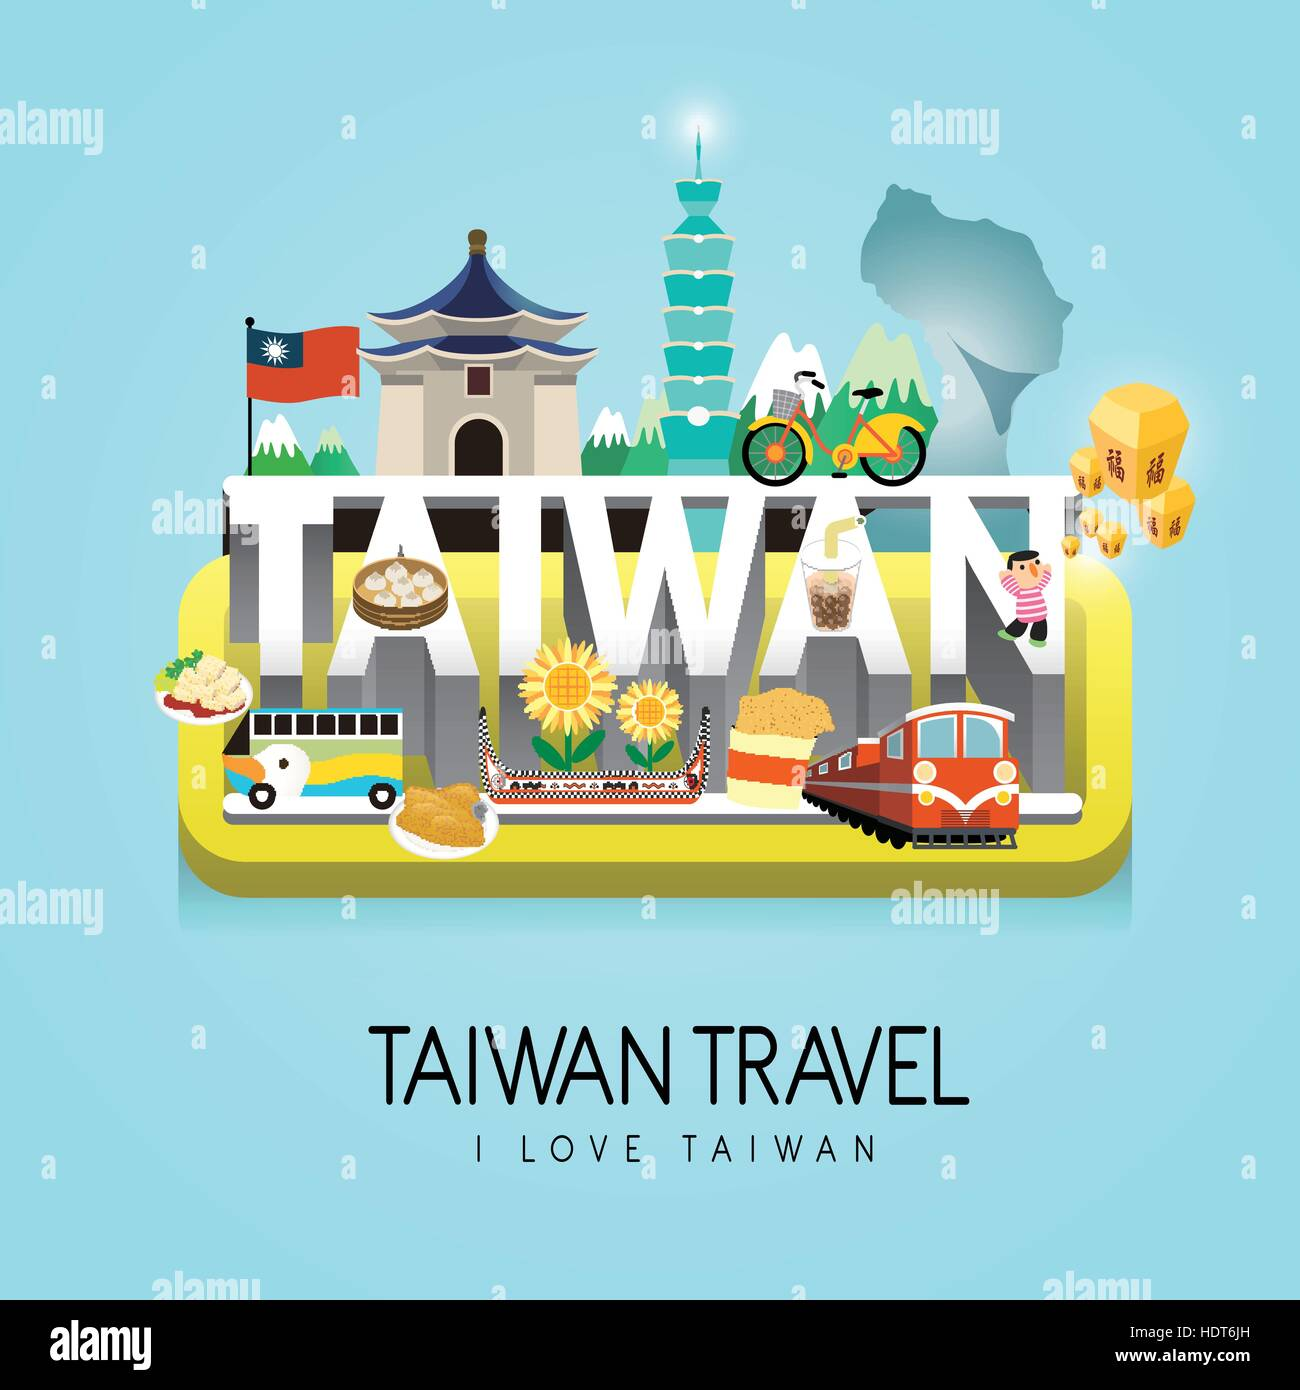 Taiwan Travel Concept Poster